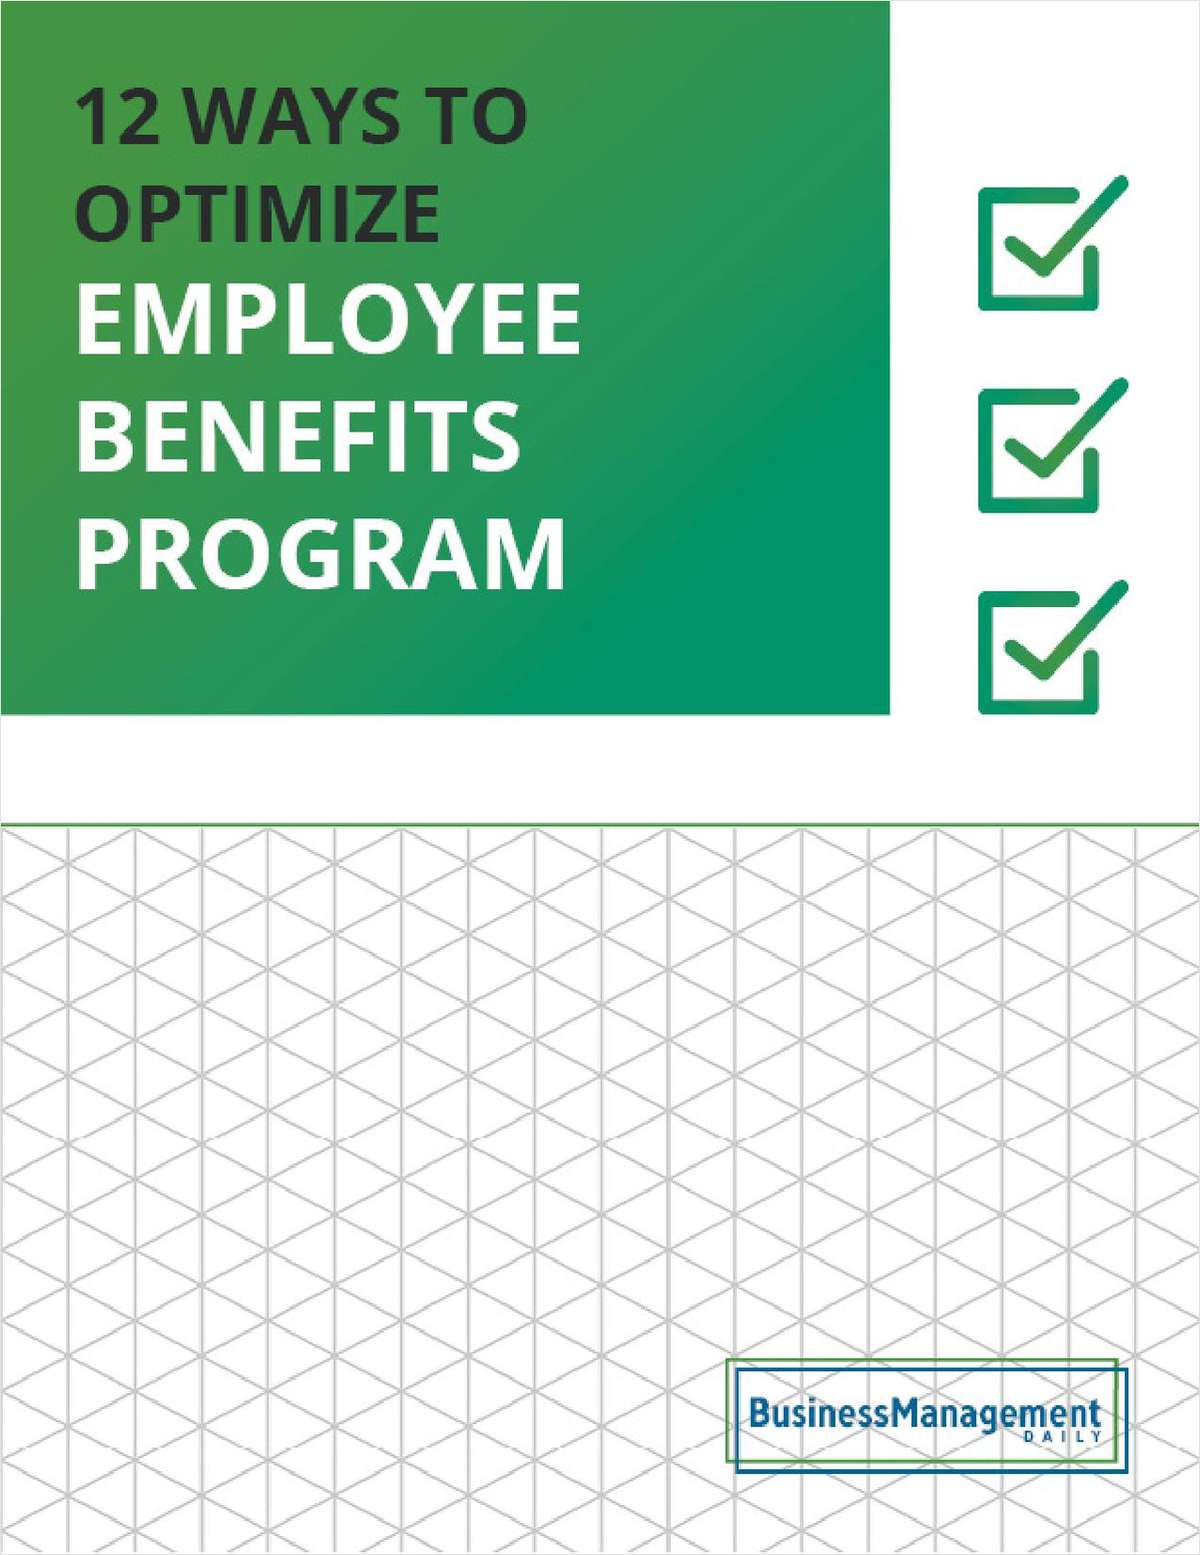 12 Ways to Optimize Your Employee Benefits Program: Low-Cost Employee Incentives, Recognition Programs and Rewards